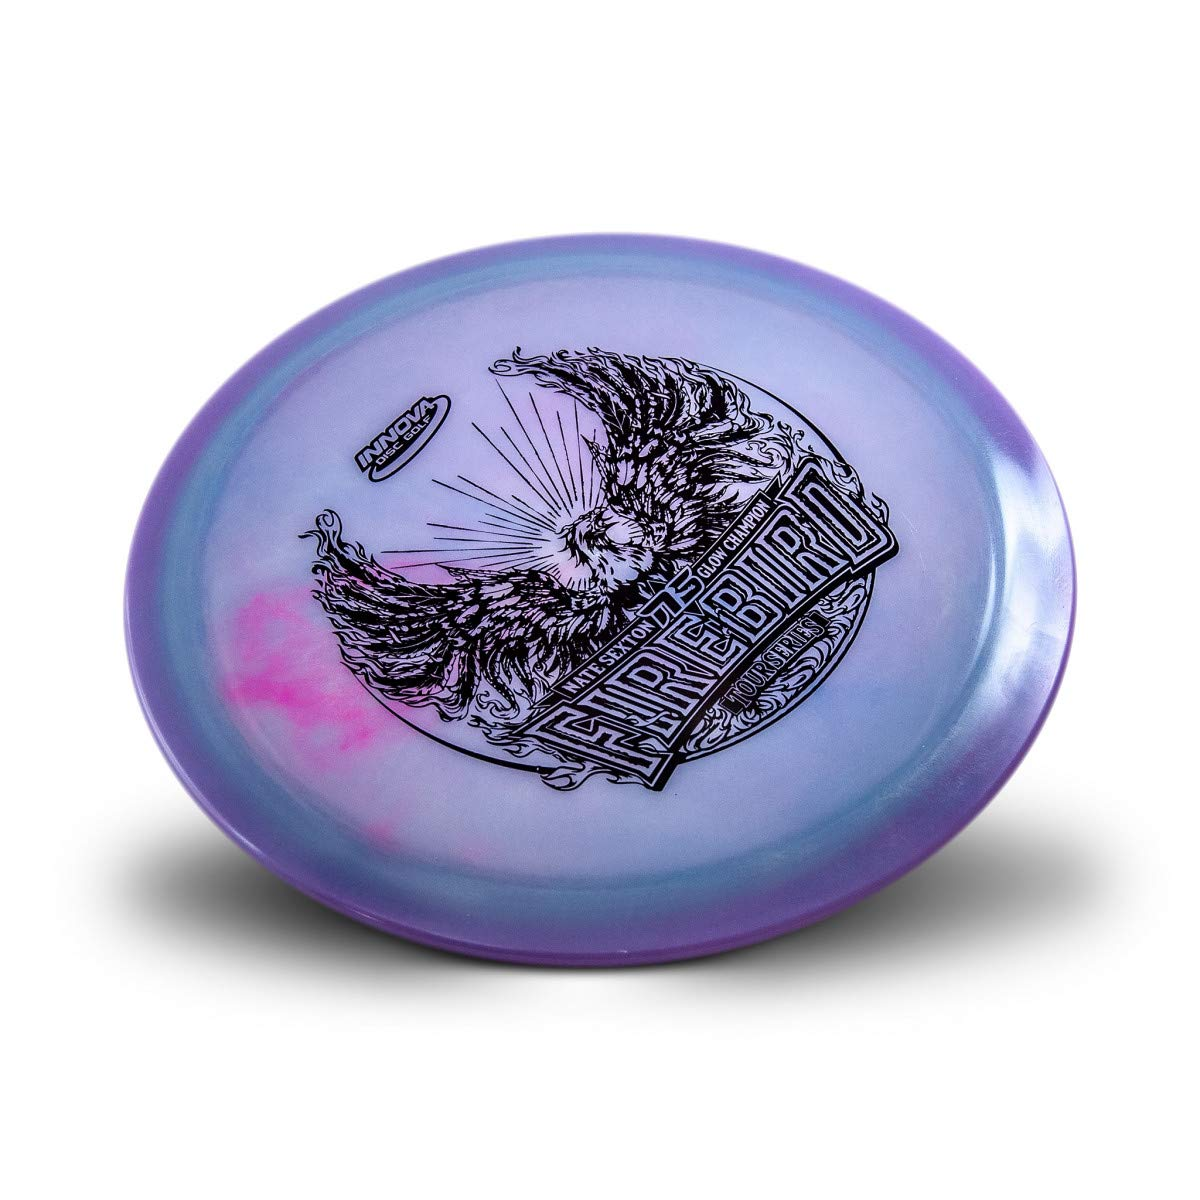 Innova Limited Edition 2019 Tour Series Nate Sexton Color Glow Champion Firebird Distance Driver Golf Disc [Colors May Vary] - 173-175g by Innova Disc Golf